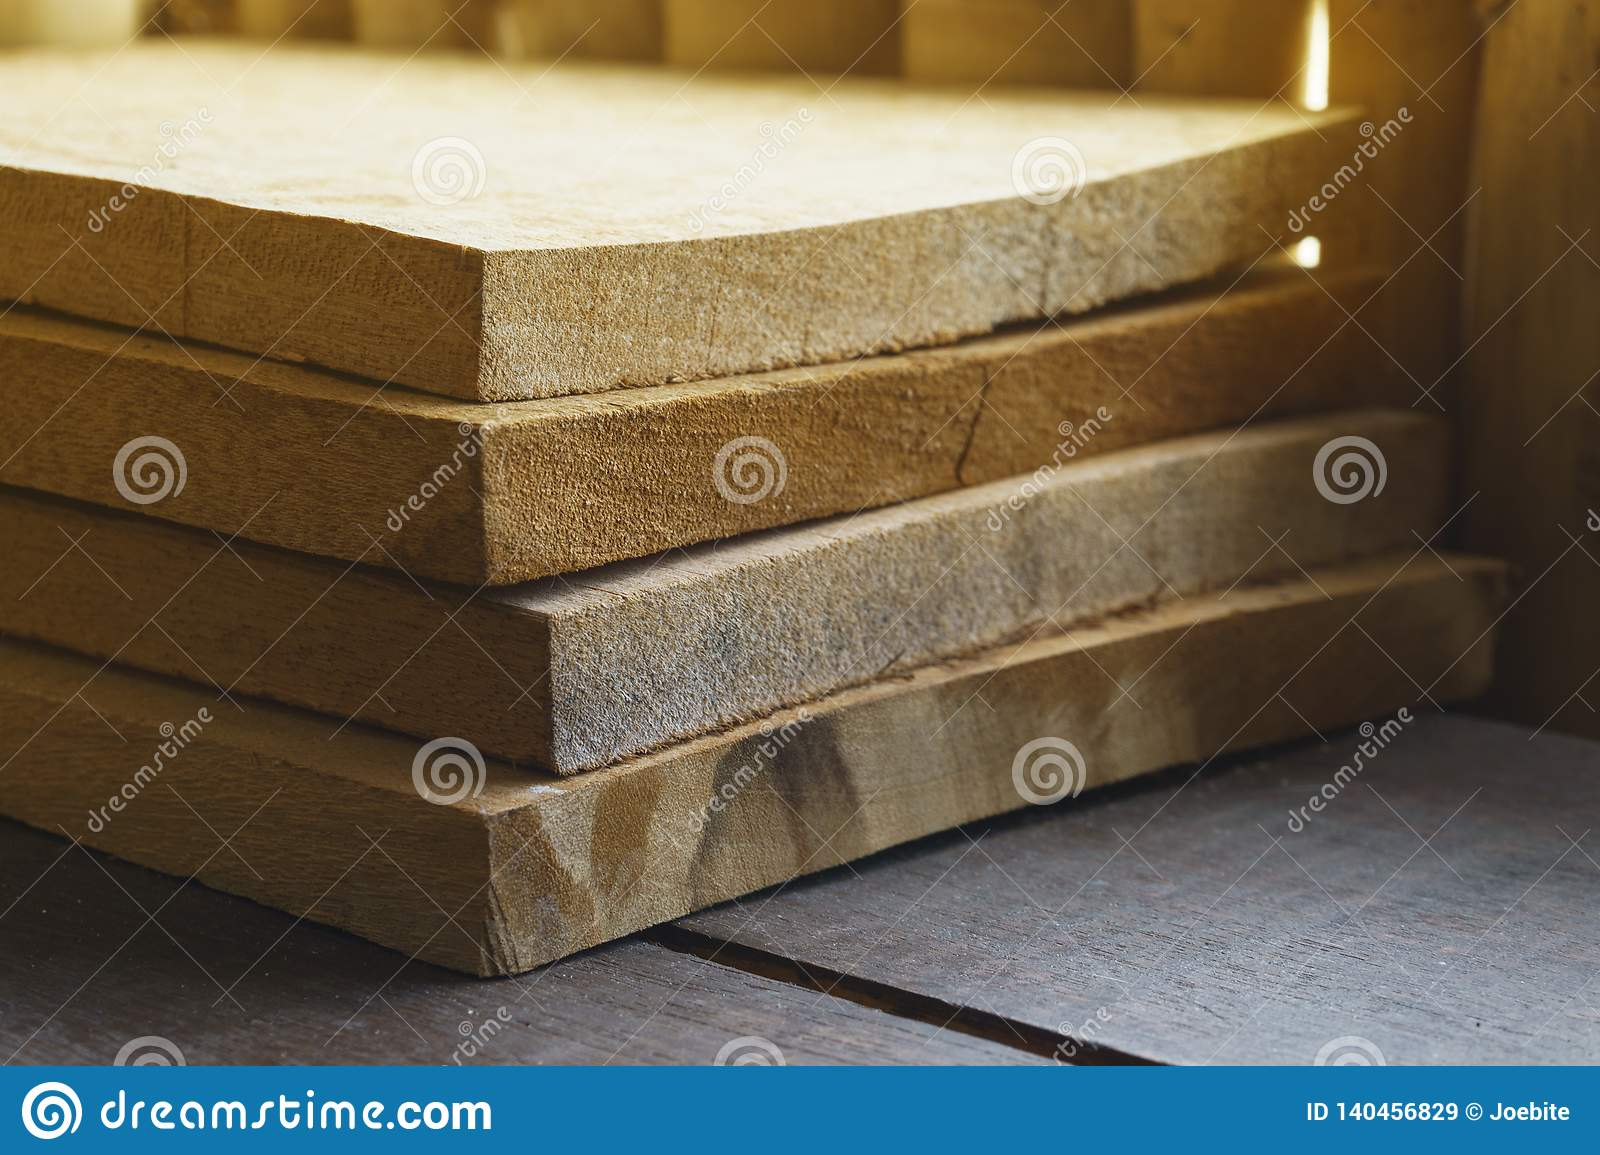 Group of wooden tile pieces